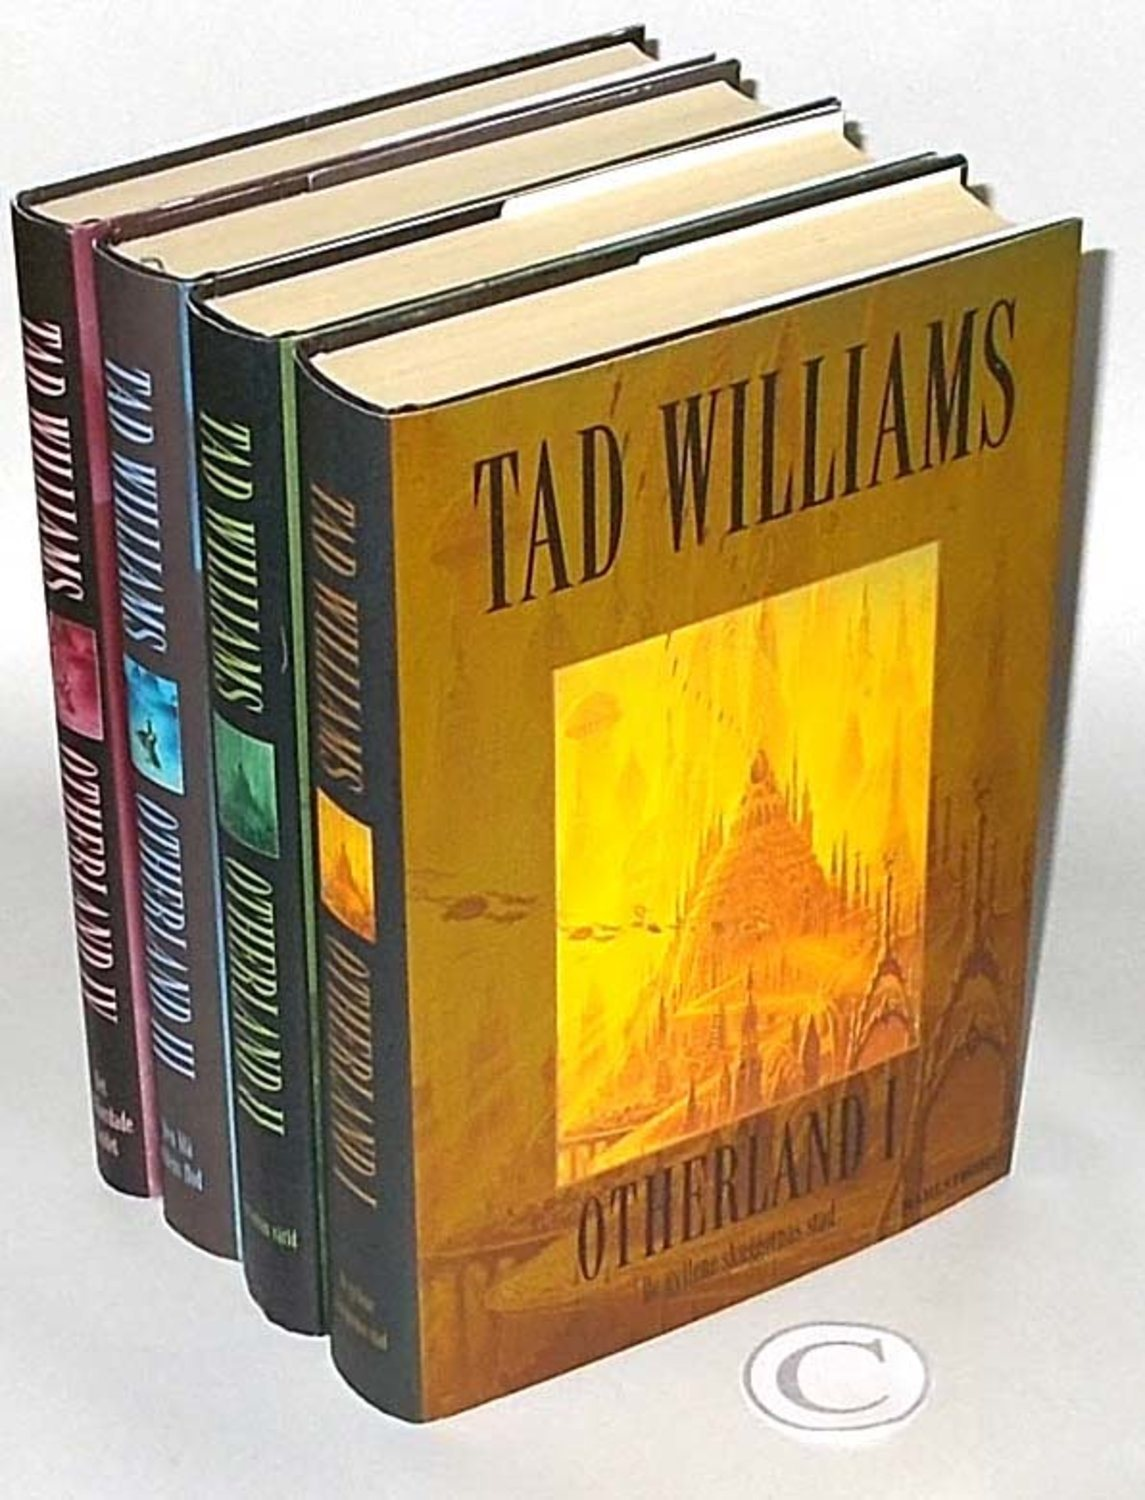 Tad Williams : 4 Böcker: Otherland. Del 1-2-3-4 De gyllene